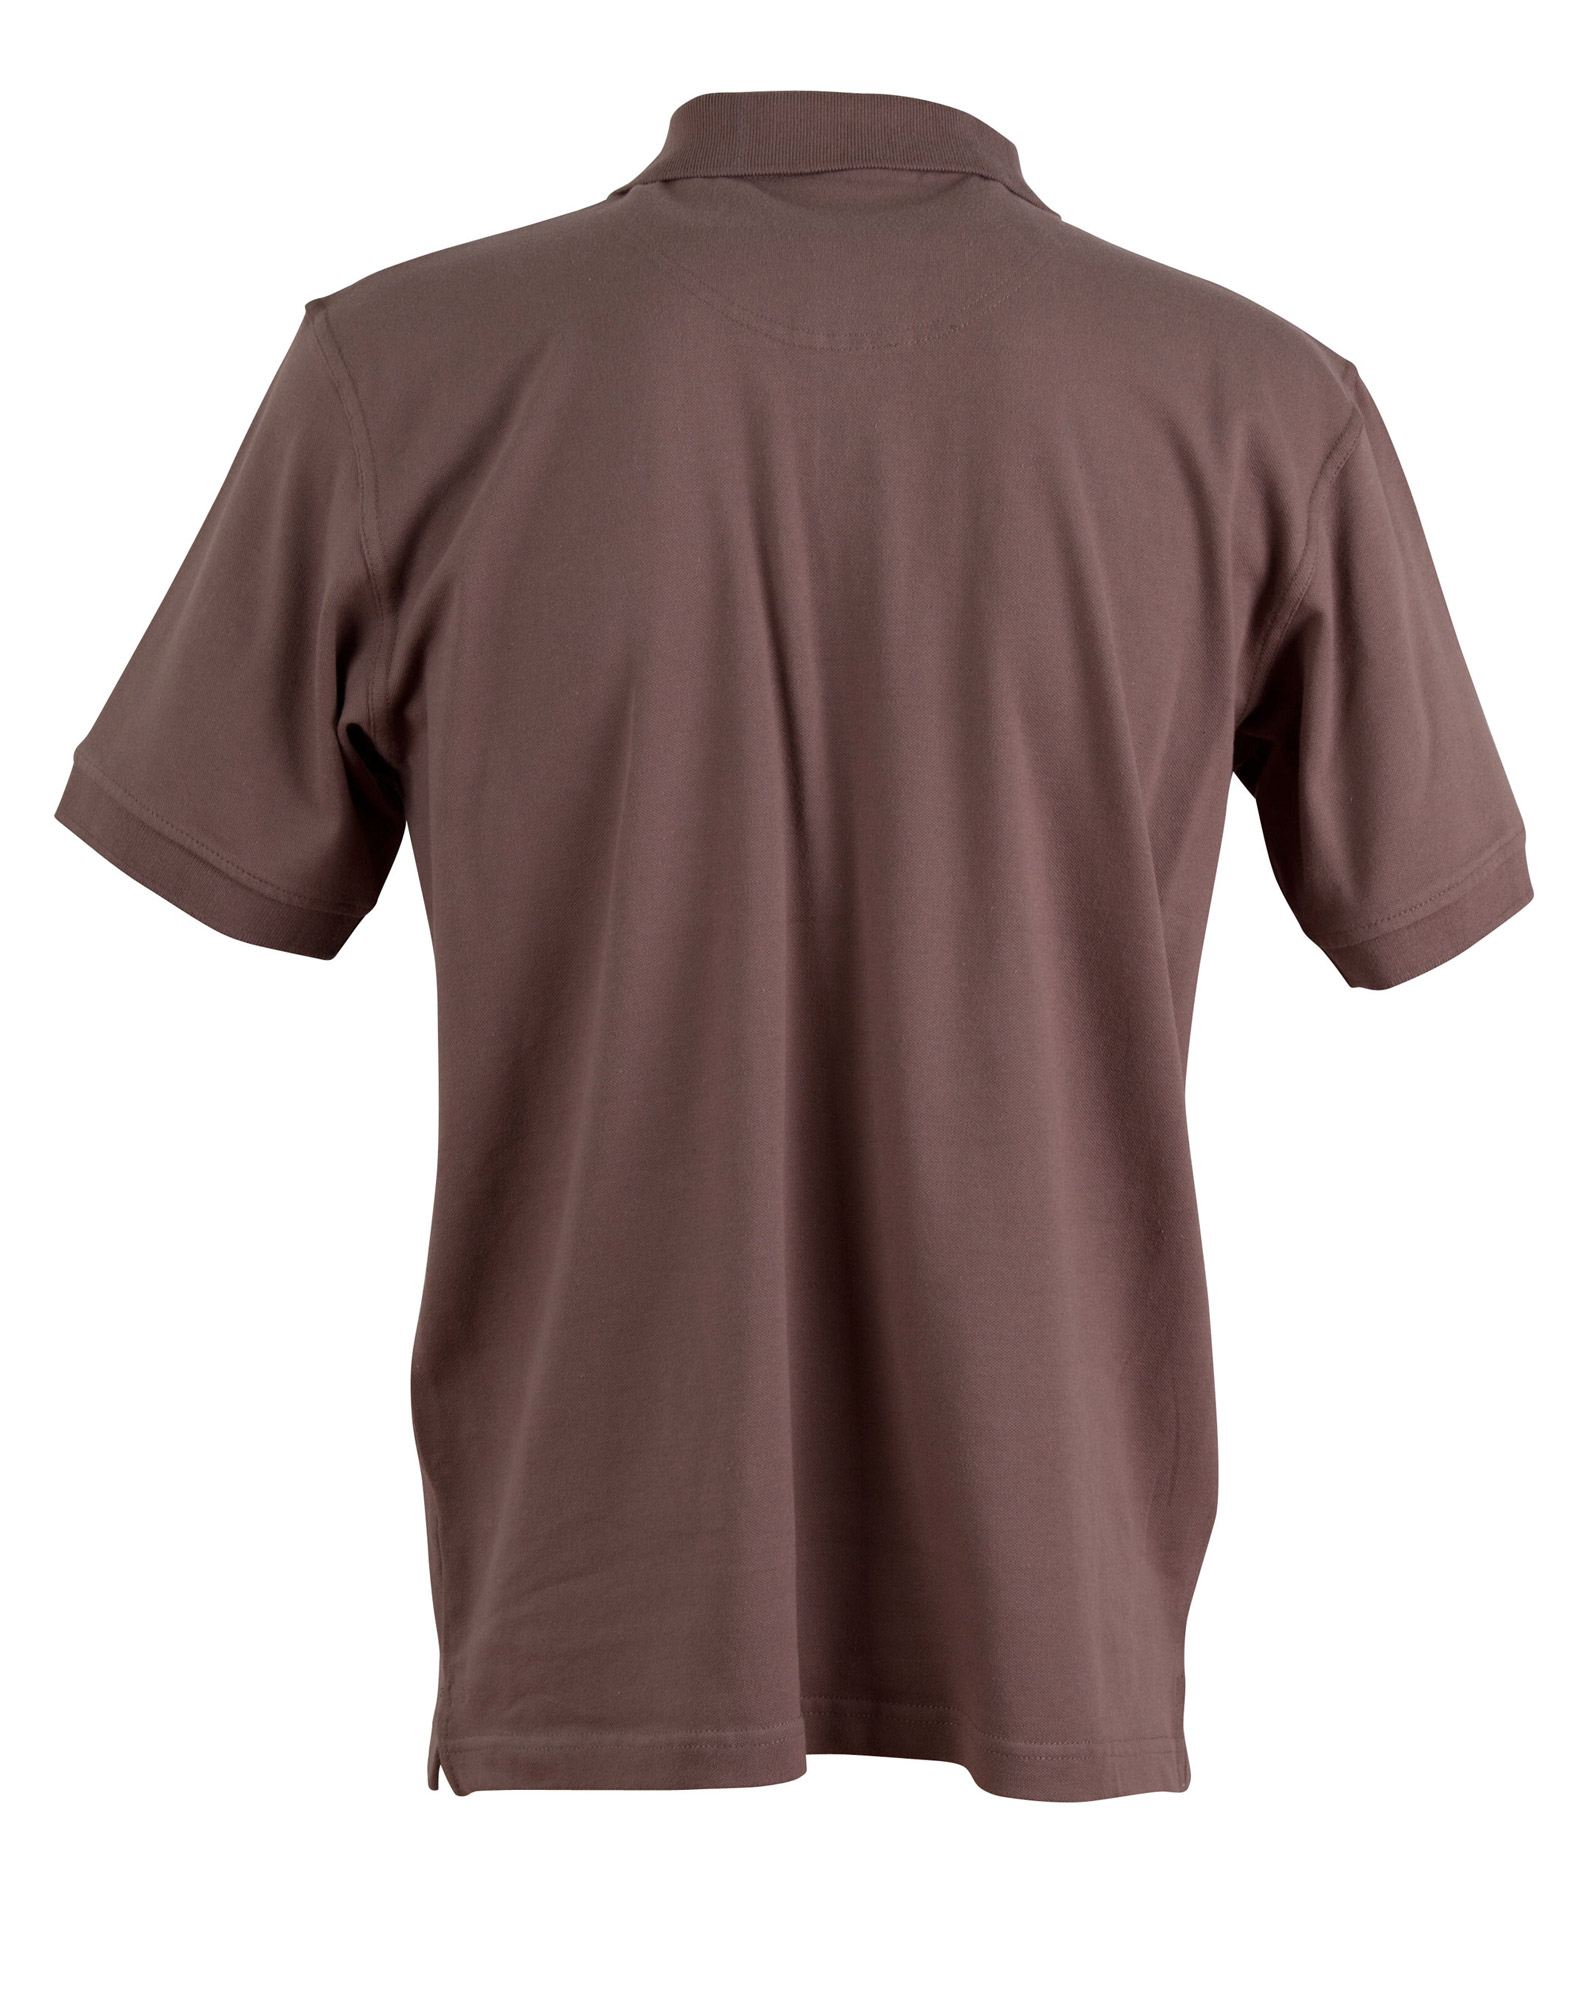 https://s3-ap-southeast-1.amazonaws.com/ws-imgs/POLOSHIRTS/PS55_SmokeBrown_Back_l.jpg